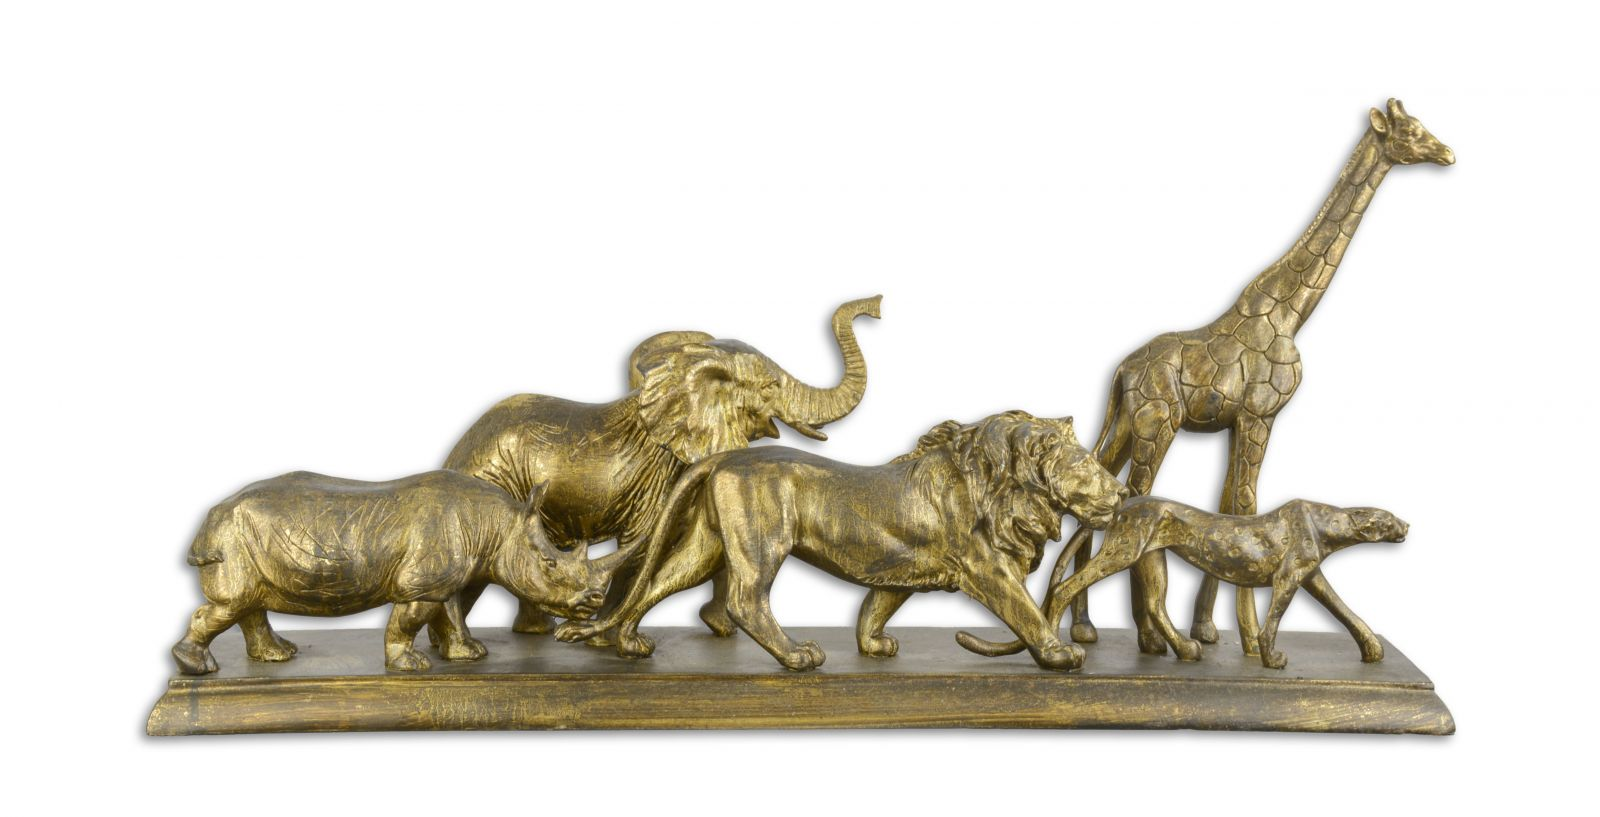 Statue of Animals - The Big Five made of resin BrokInCZ